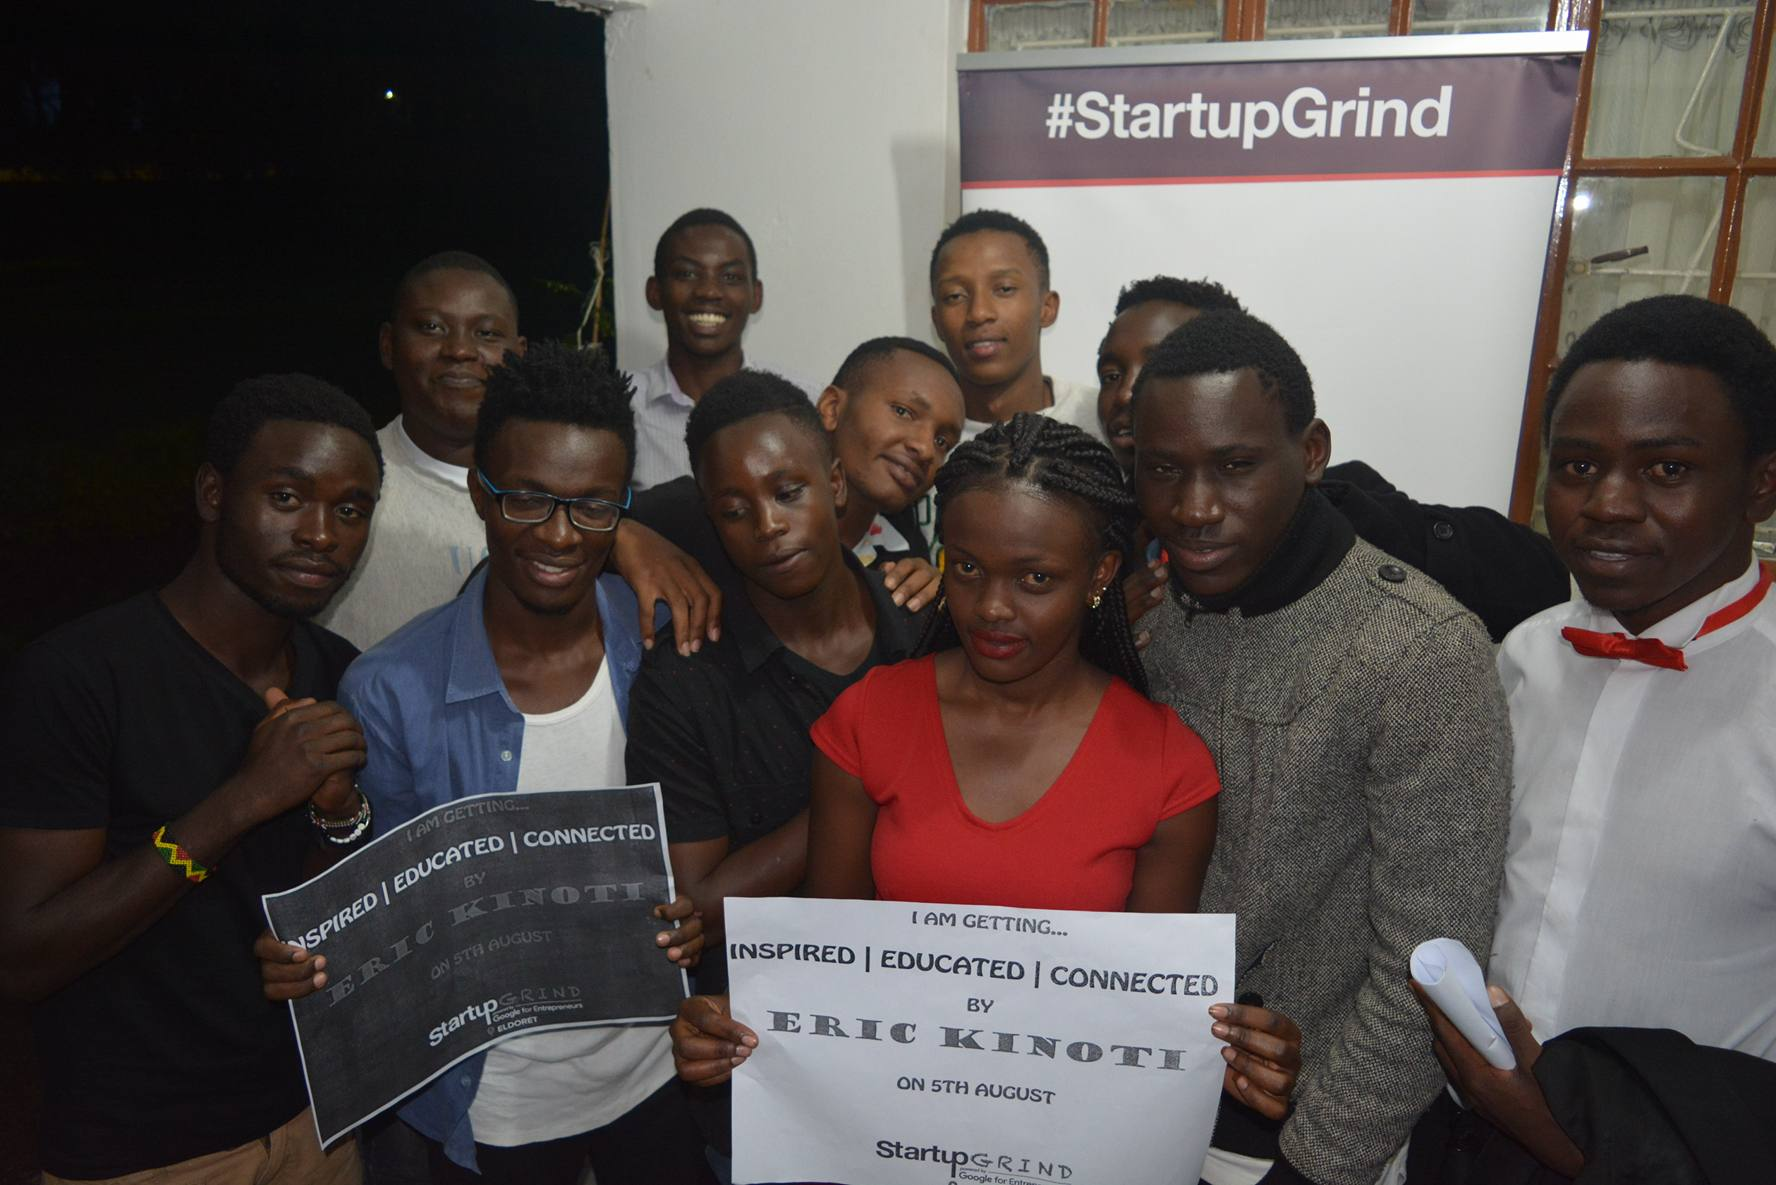 Baraka works with Startup Grind, Eldoret to inspire, educate and connect entrepreneurs in Eldoret